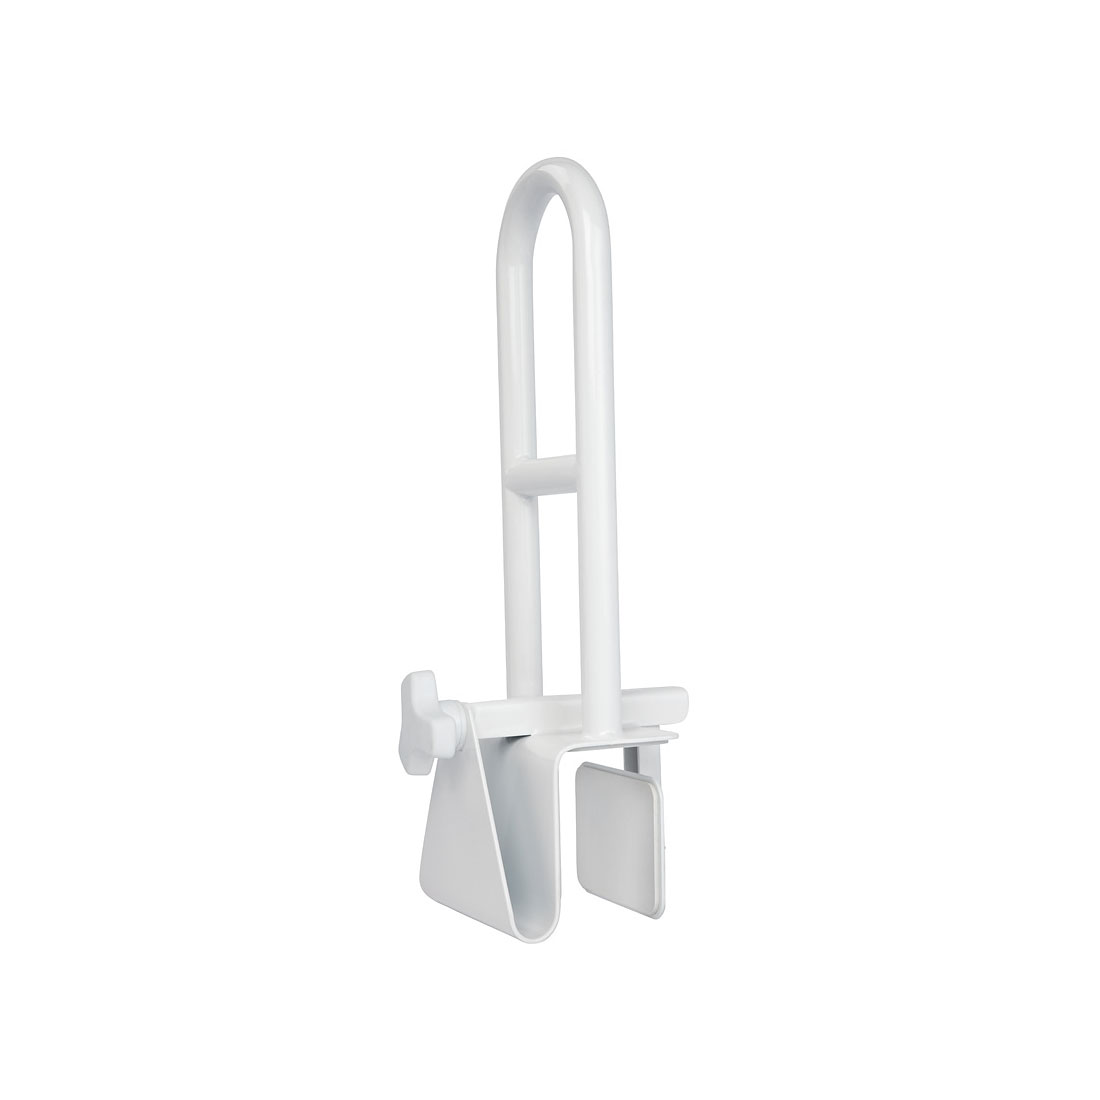 transfer shower chairs for elderly chair that lifts you up upright bathtub bar